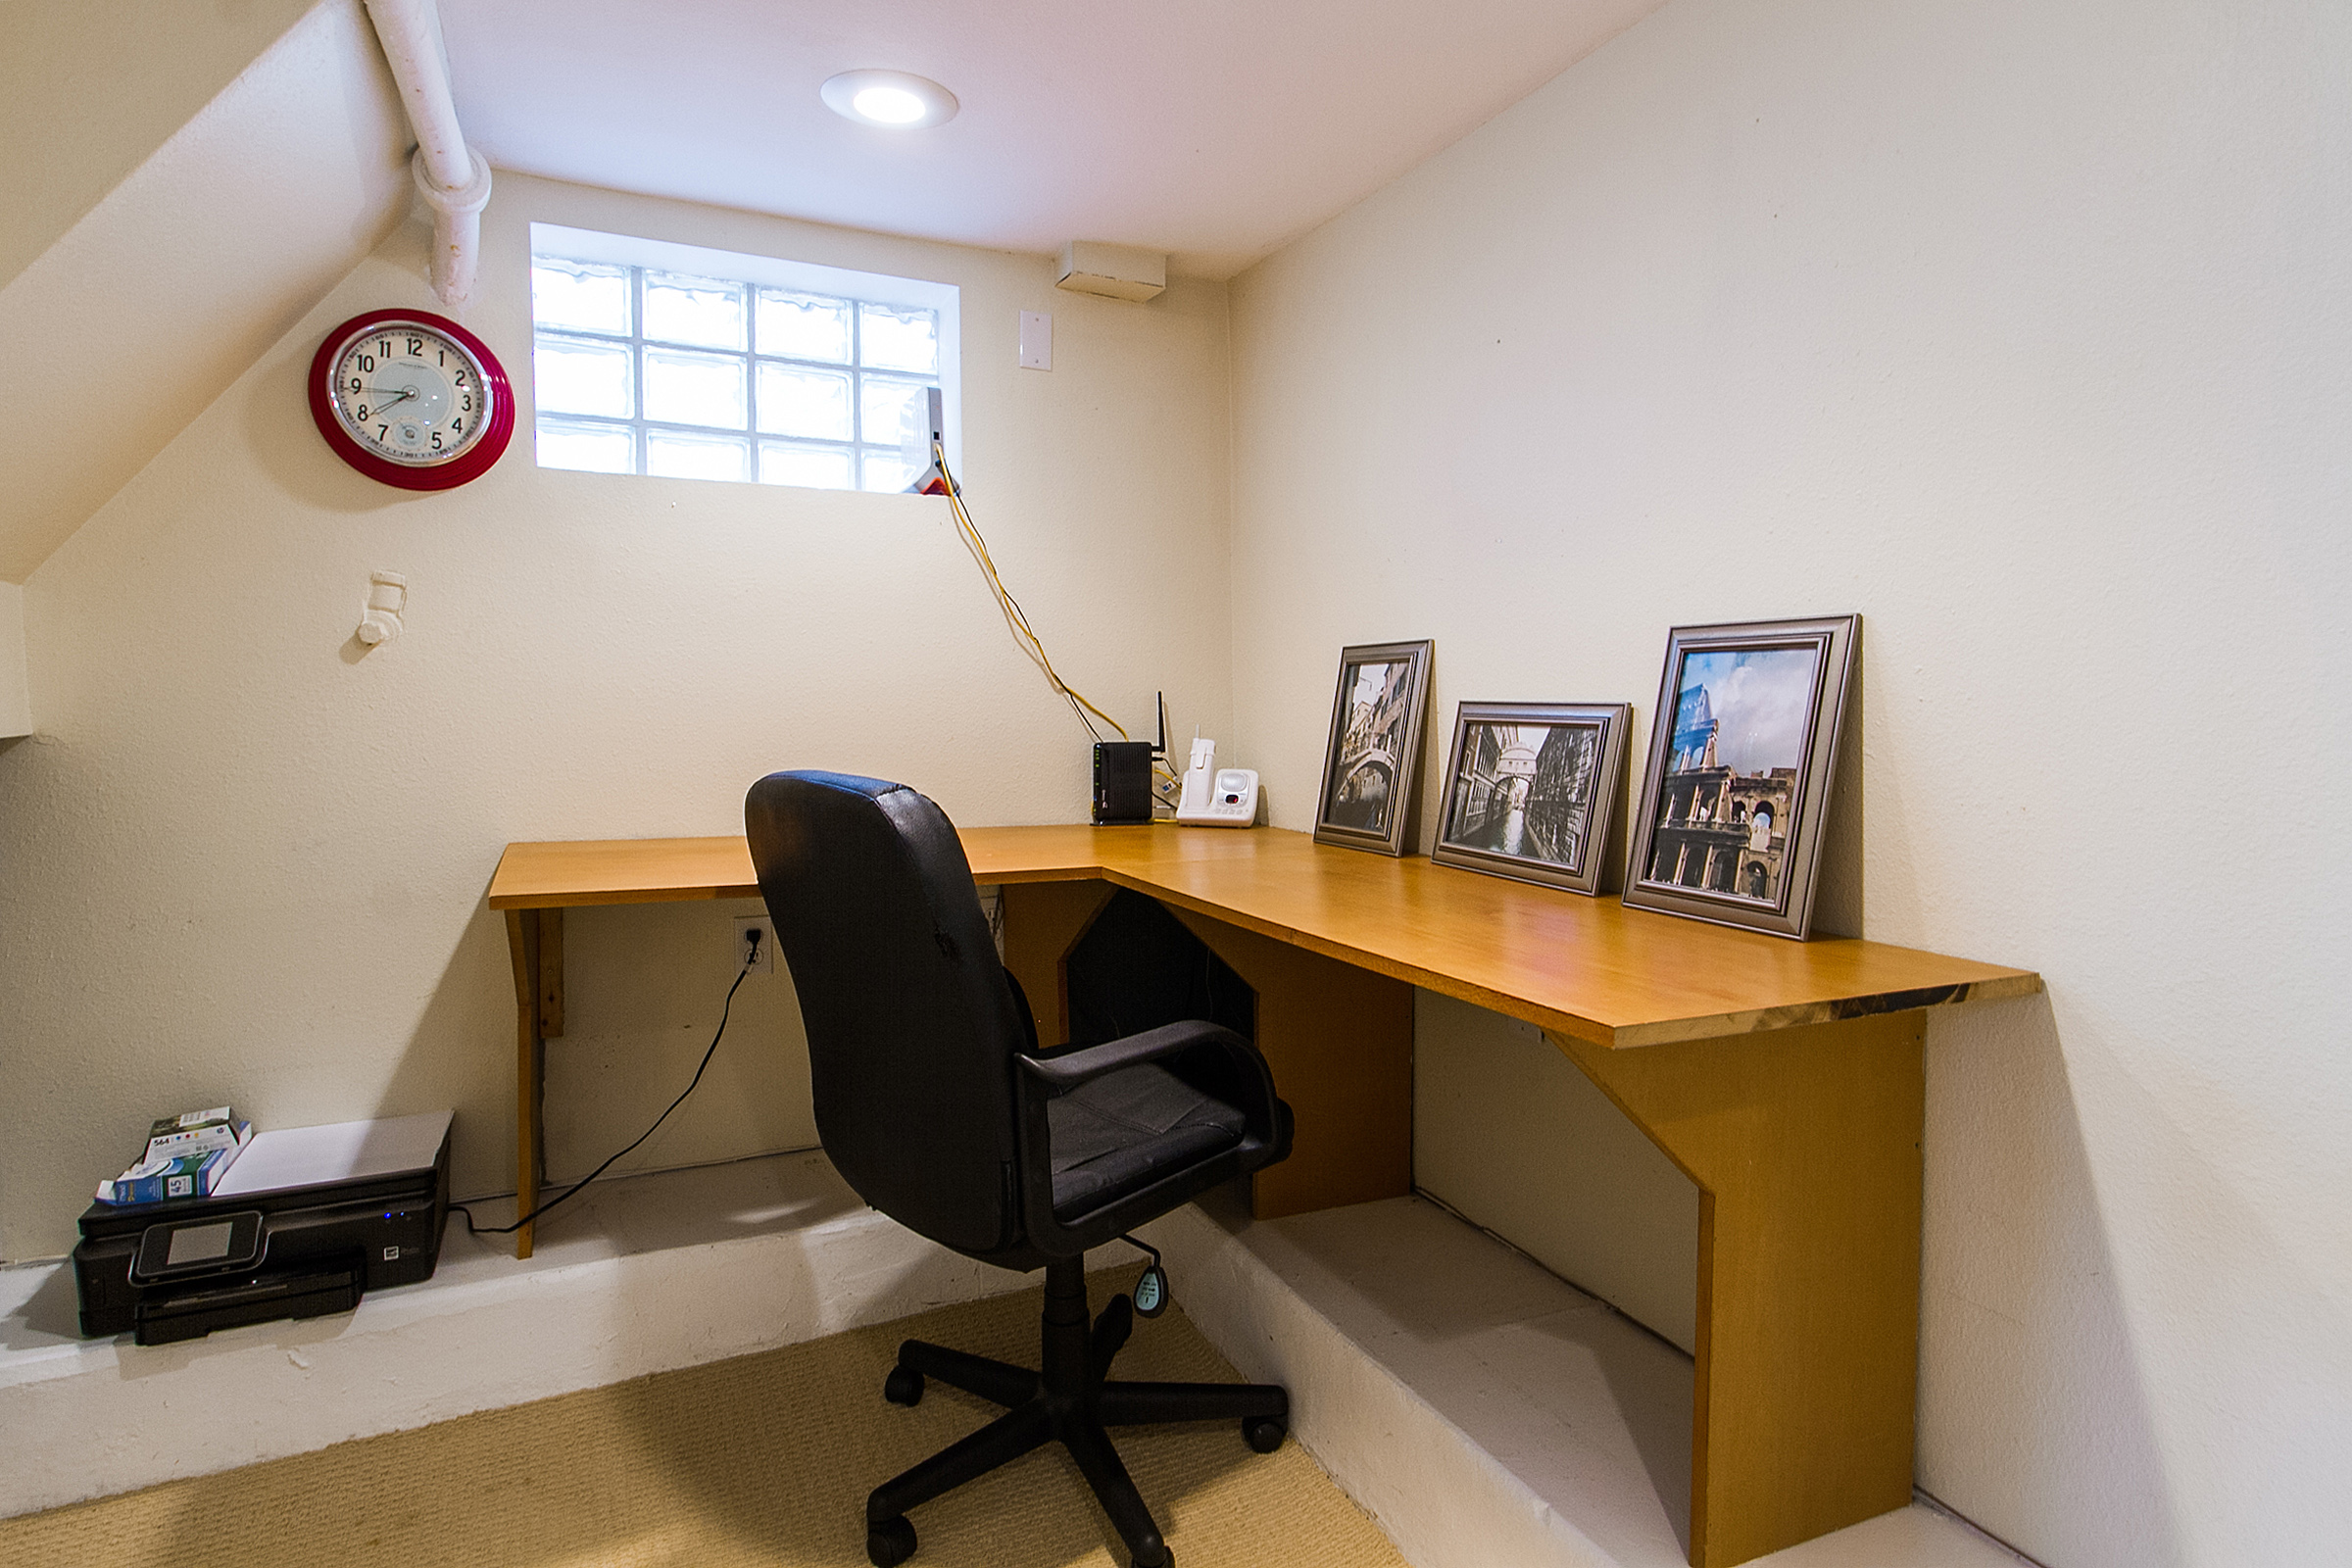 1316345_Cozy-Basement-Office-with-Glass-Block_high.jpg